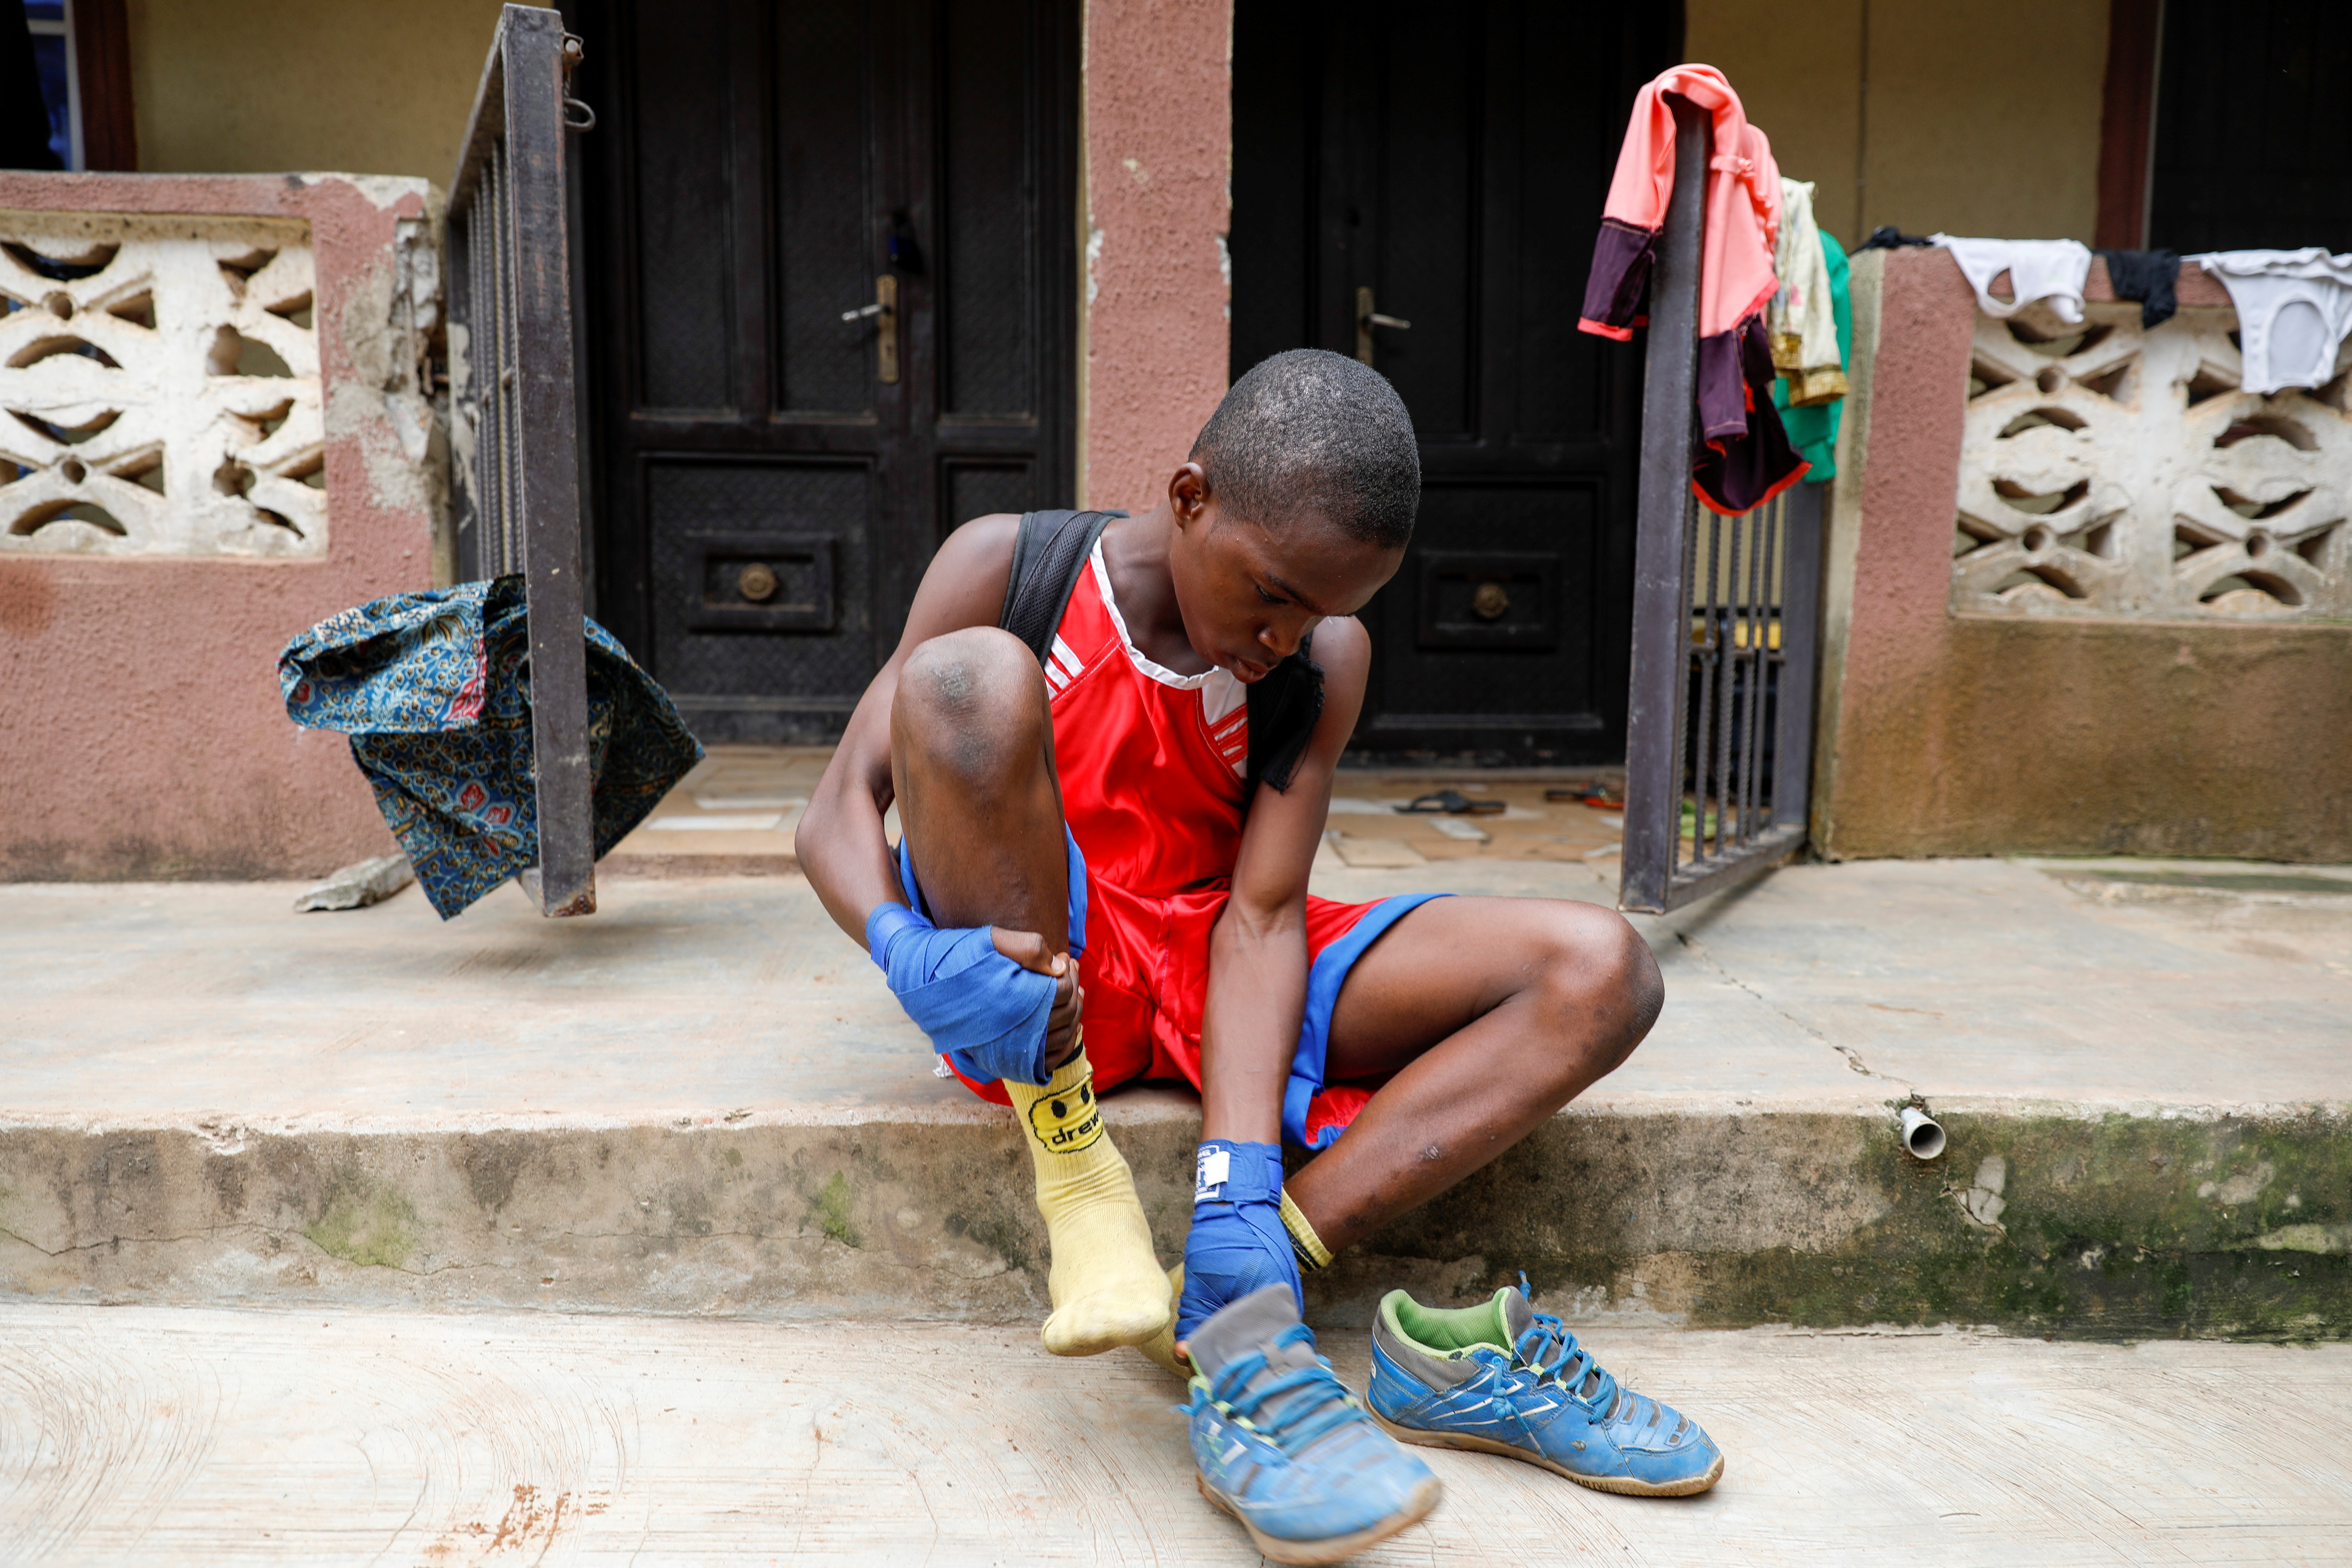 Boxer Tijani Abdulazeez, popularly known as TJ, 15, removes his shoes as he gets home after a training session in Lagos, Nigeria June 5, 2021. REUTERS/Temilade Adelaja